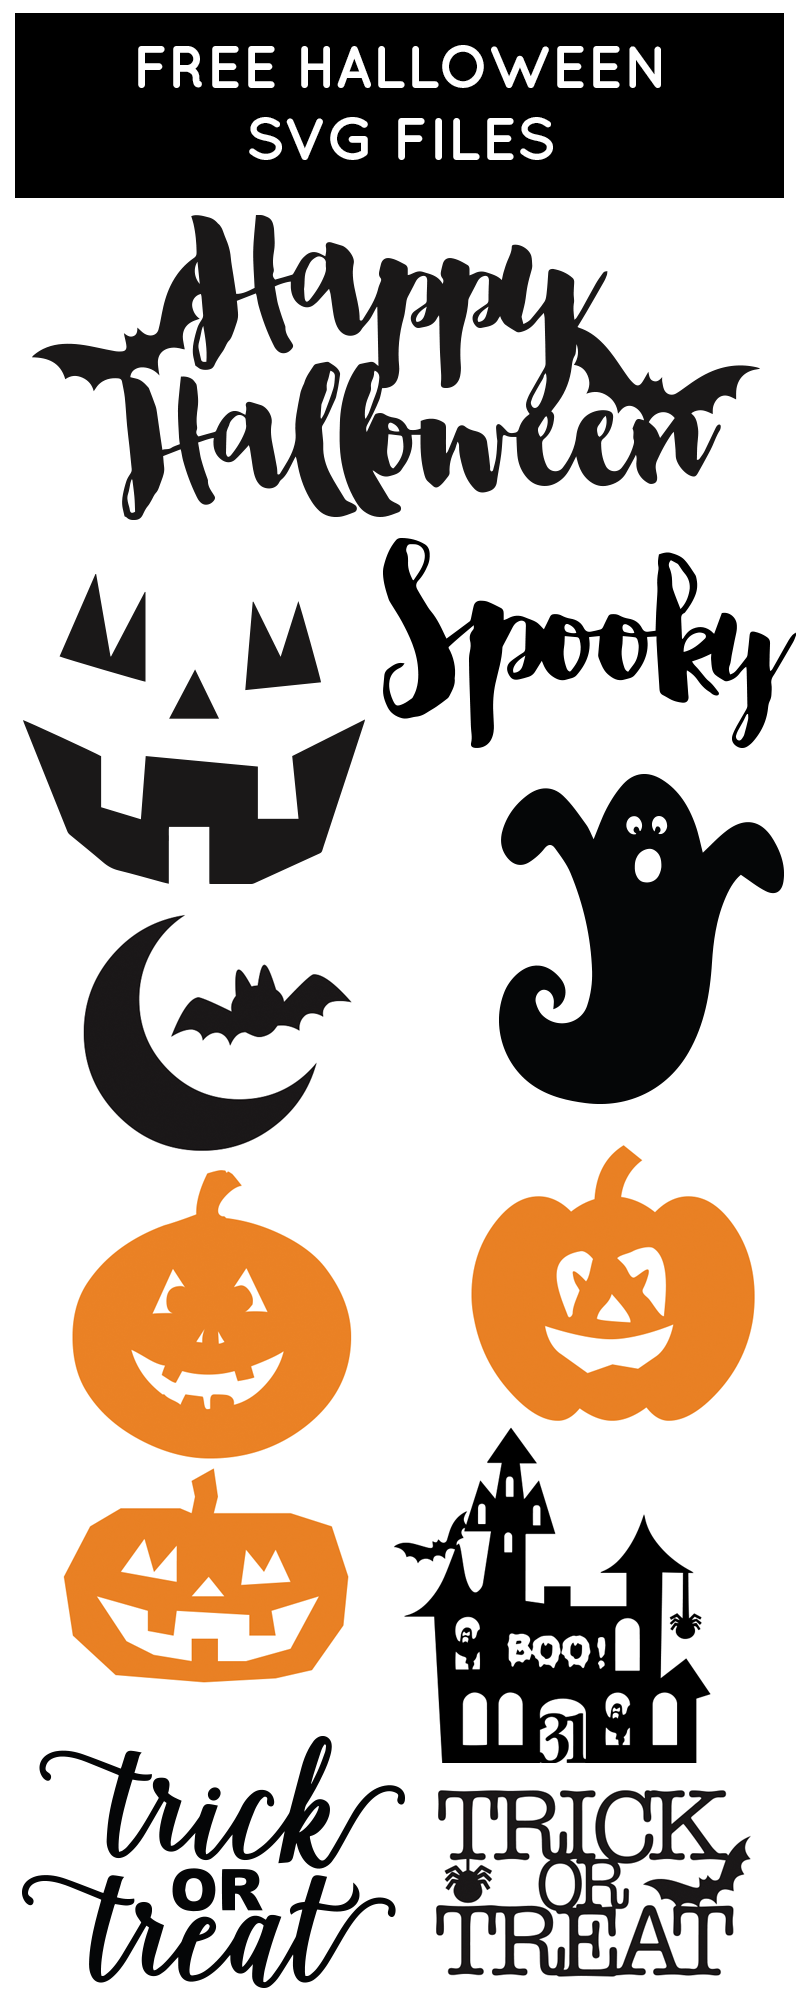 free halloween svg files - download svg cutting files for your